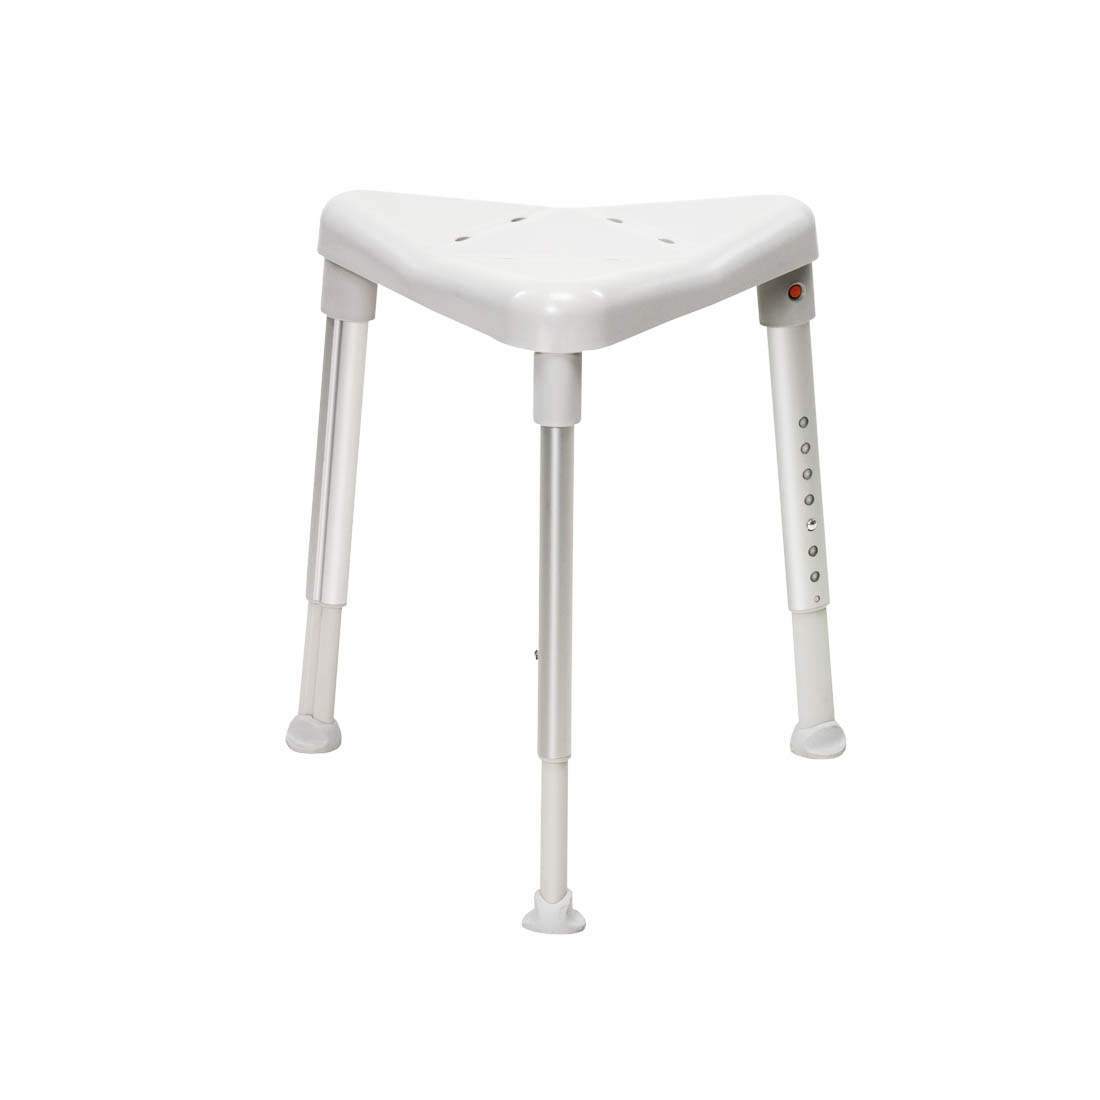 health product oapl shower stool and mobility stools centre